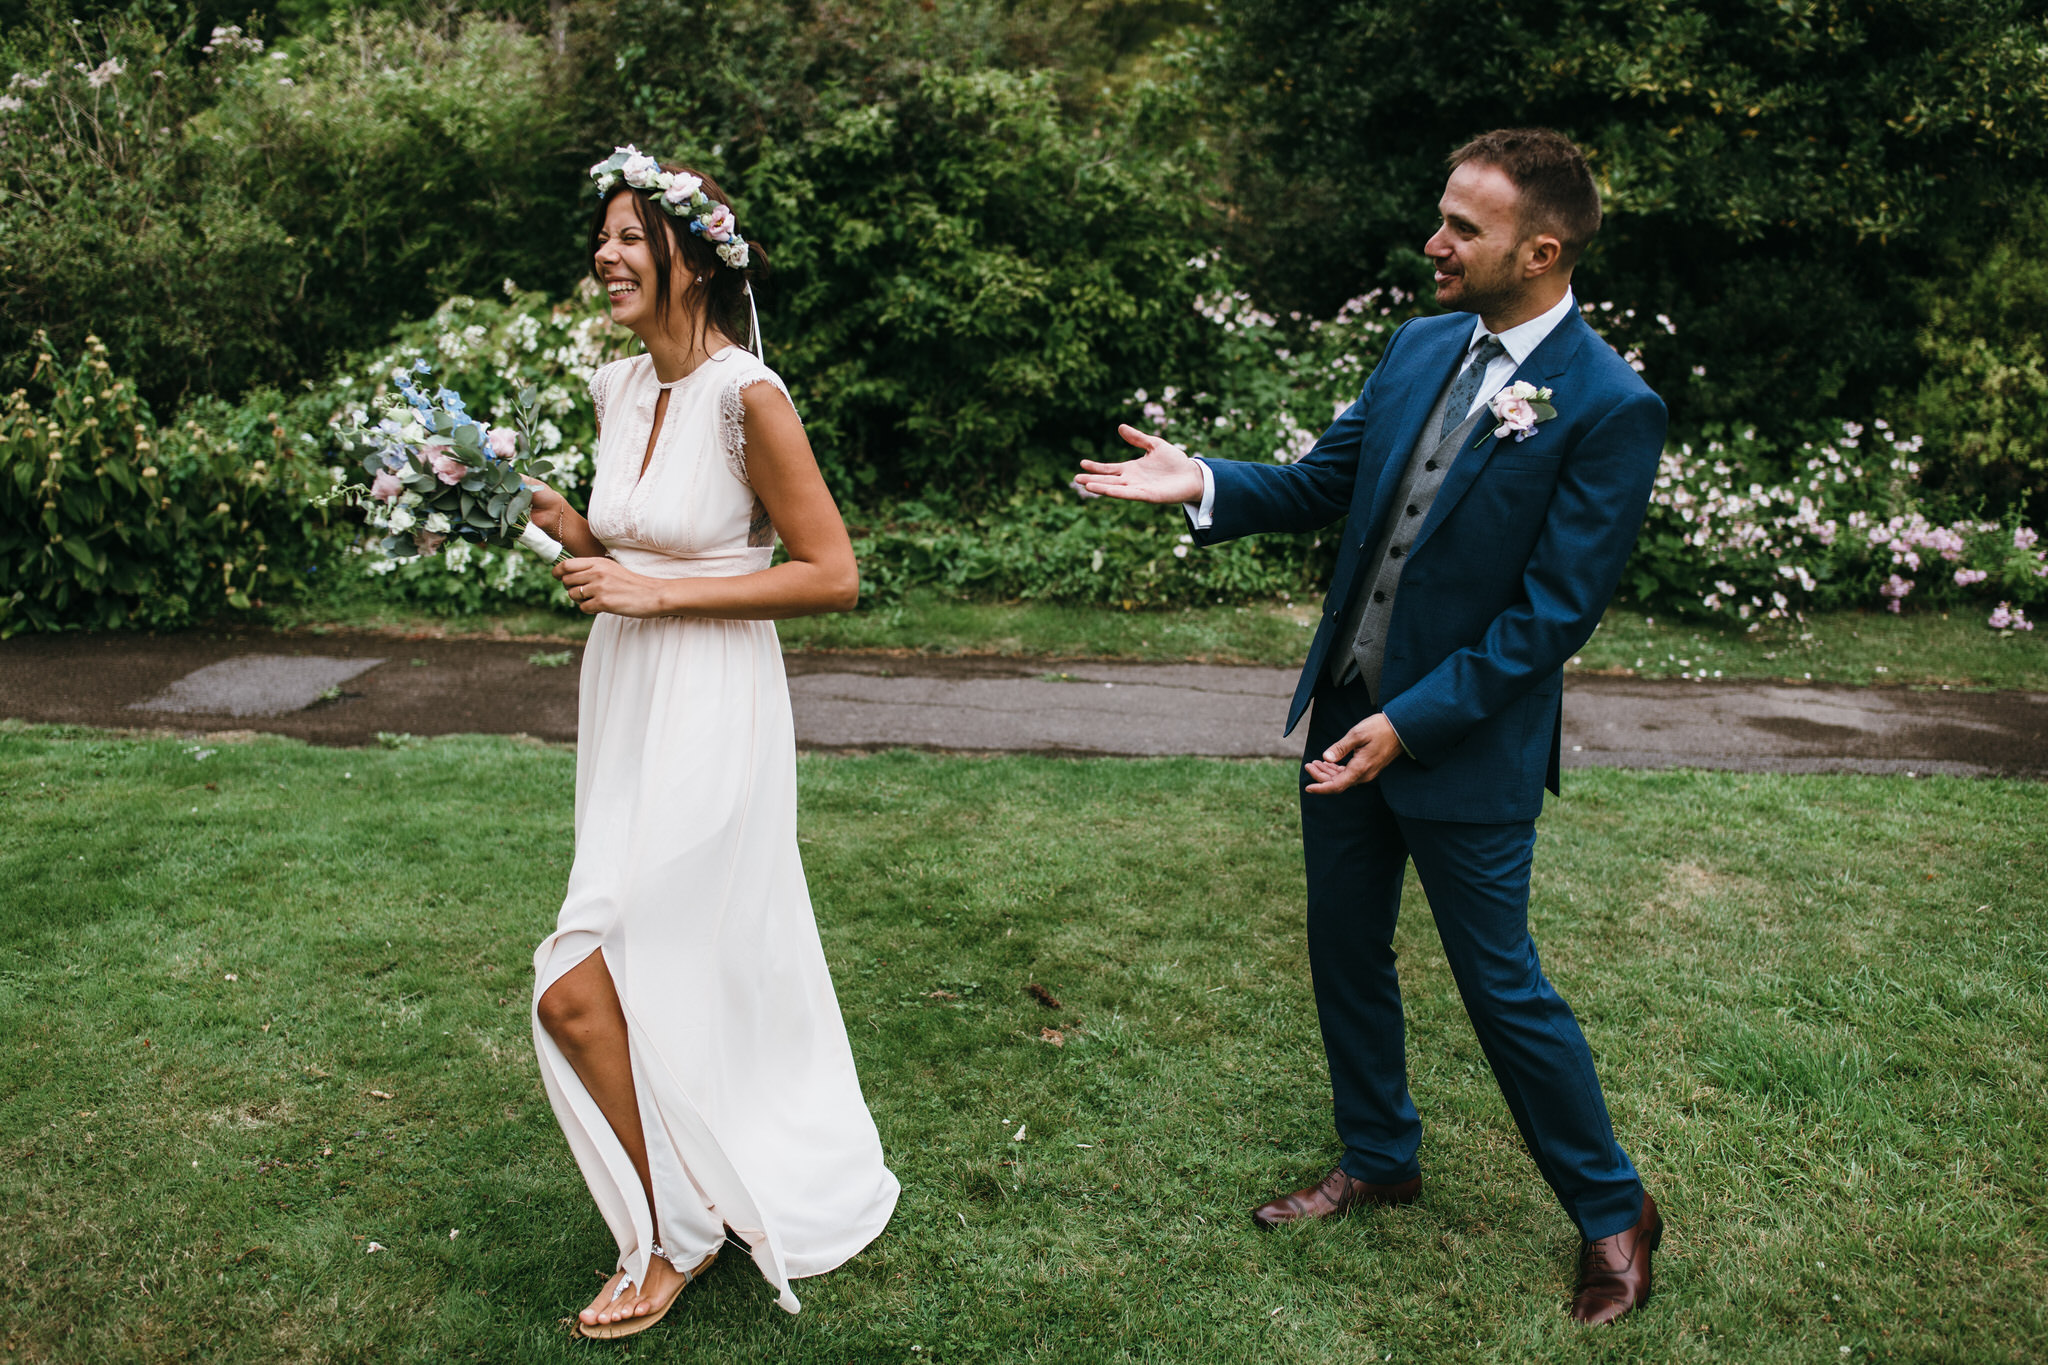 Bride and groom laughing, Botanical Gardens, Victoria Park